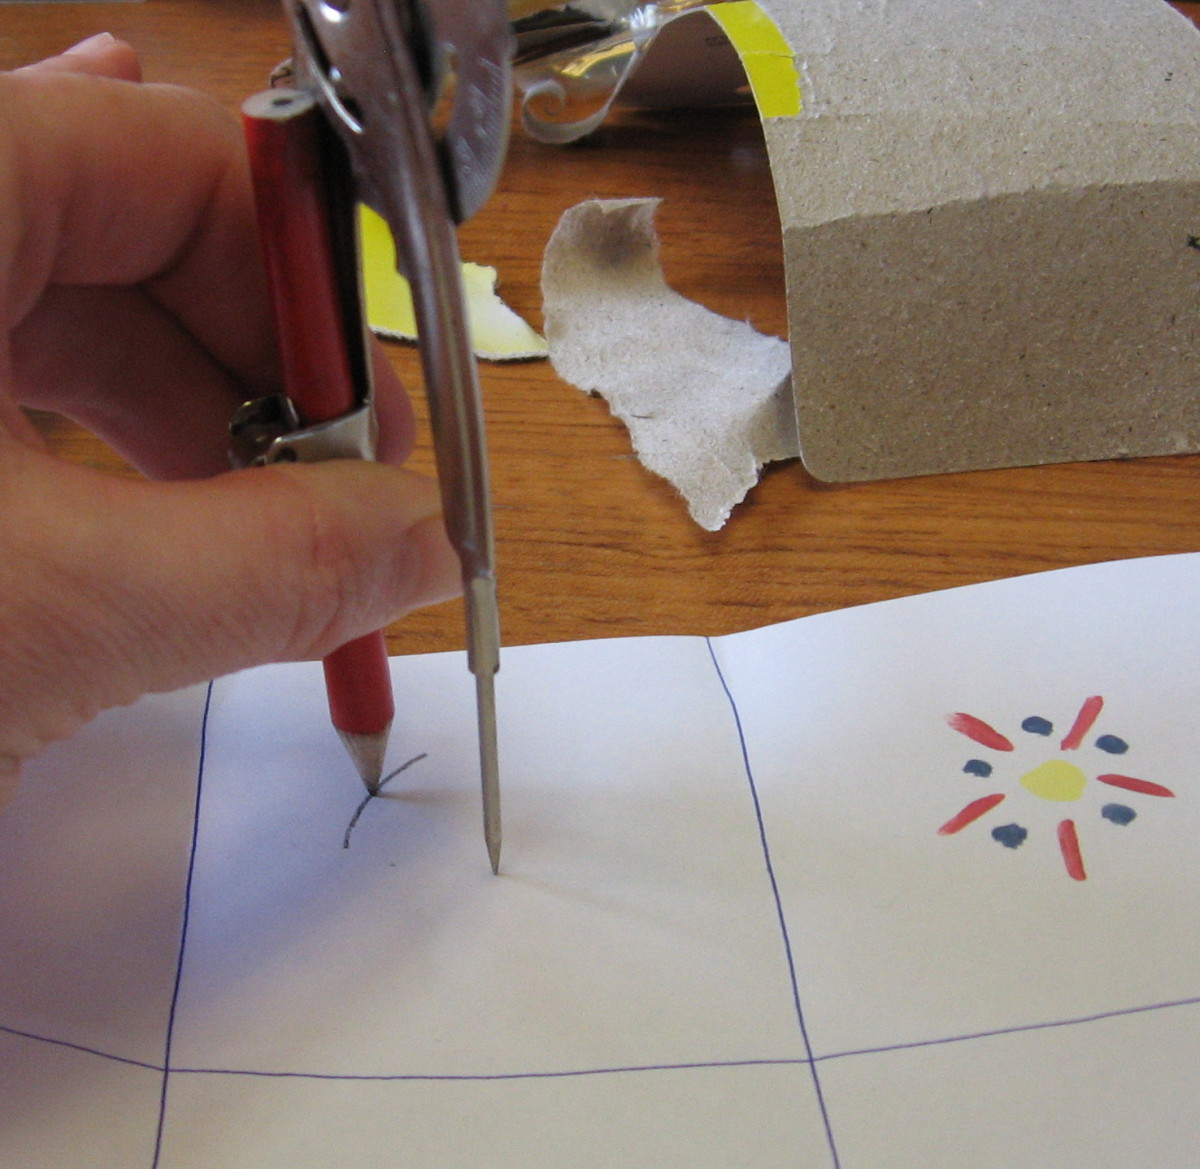 Using a compass to draw a circle the exact size of the knob face.